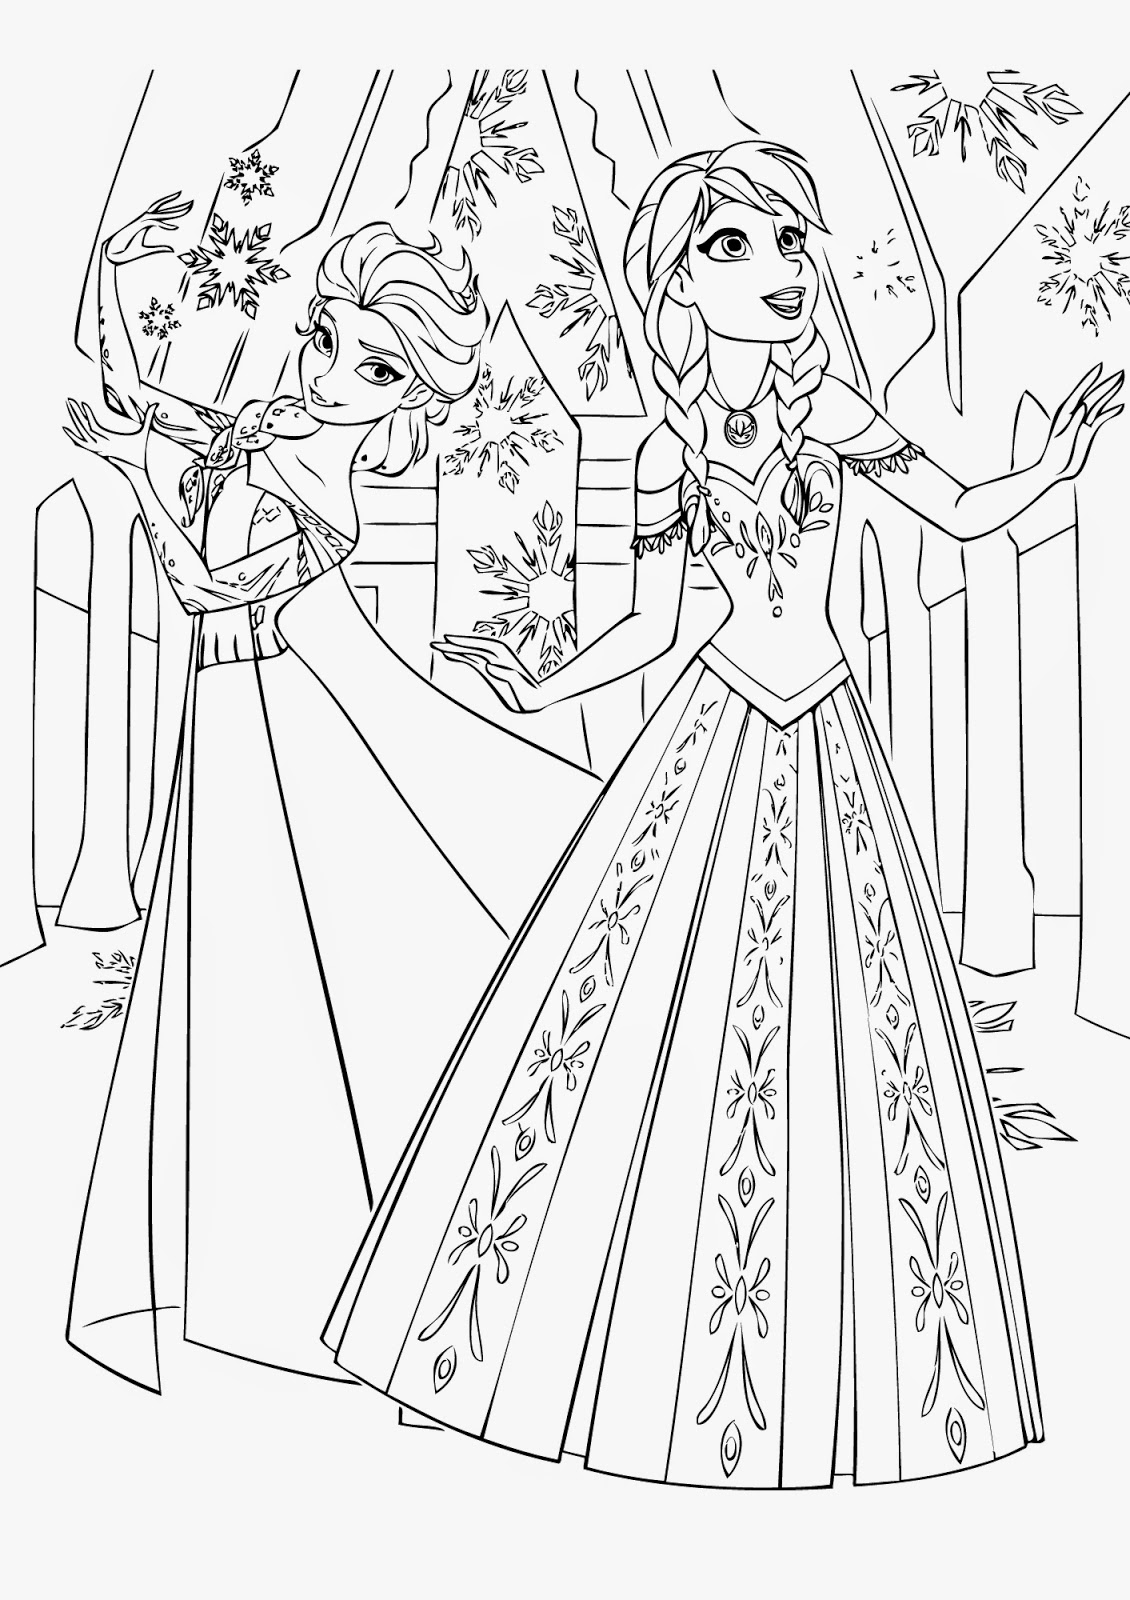 Frozen coloring pages printable games free coloring pages - free disney coloring pages frozen